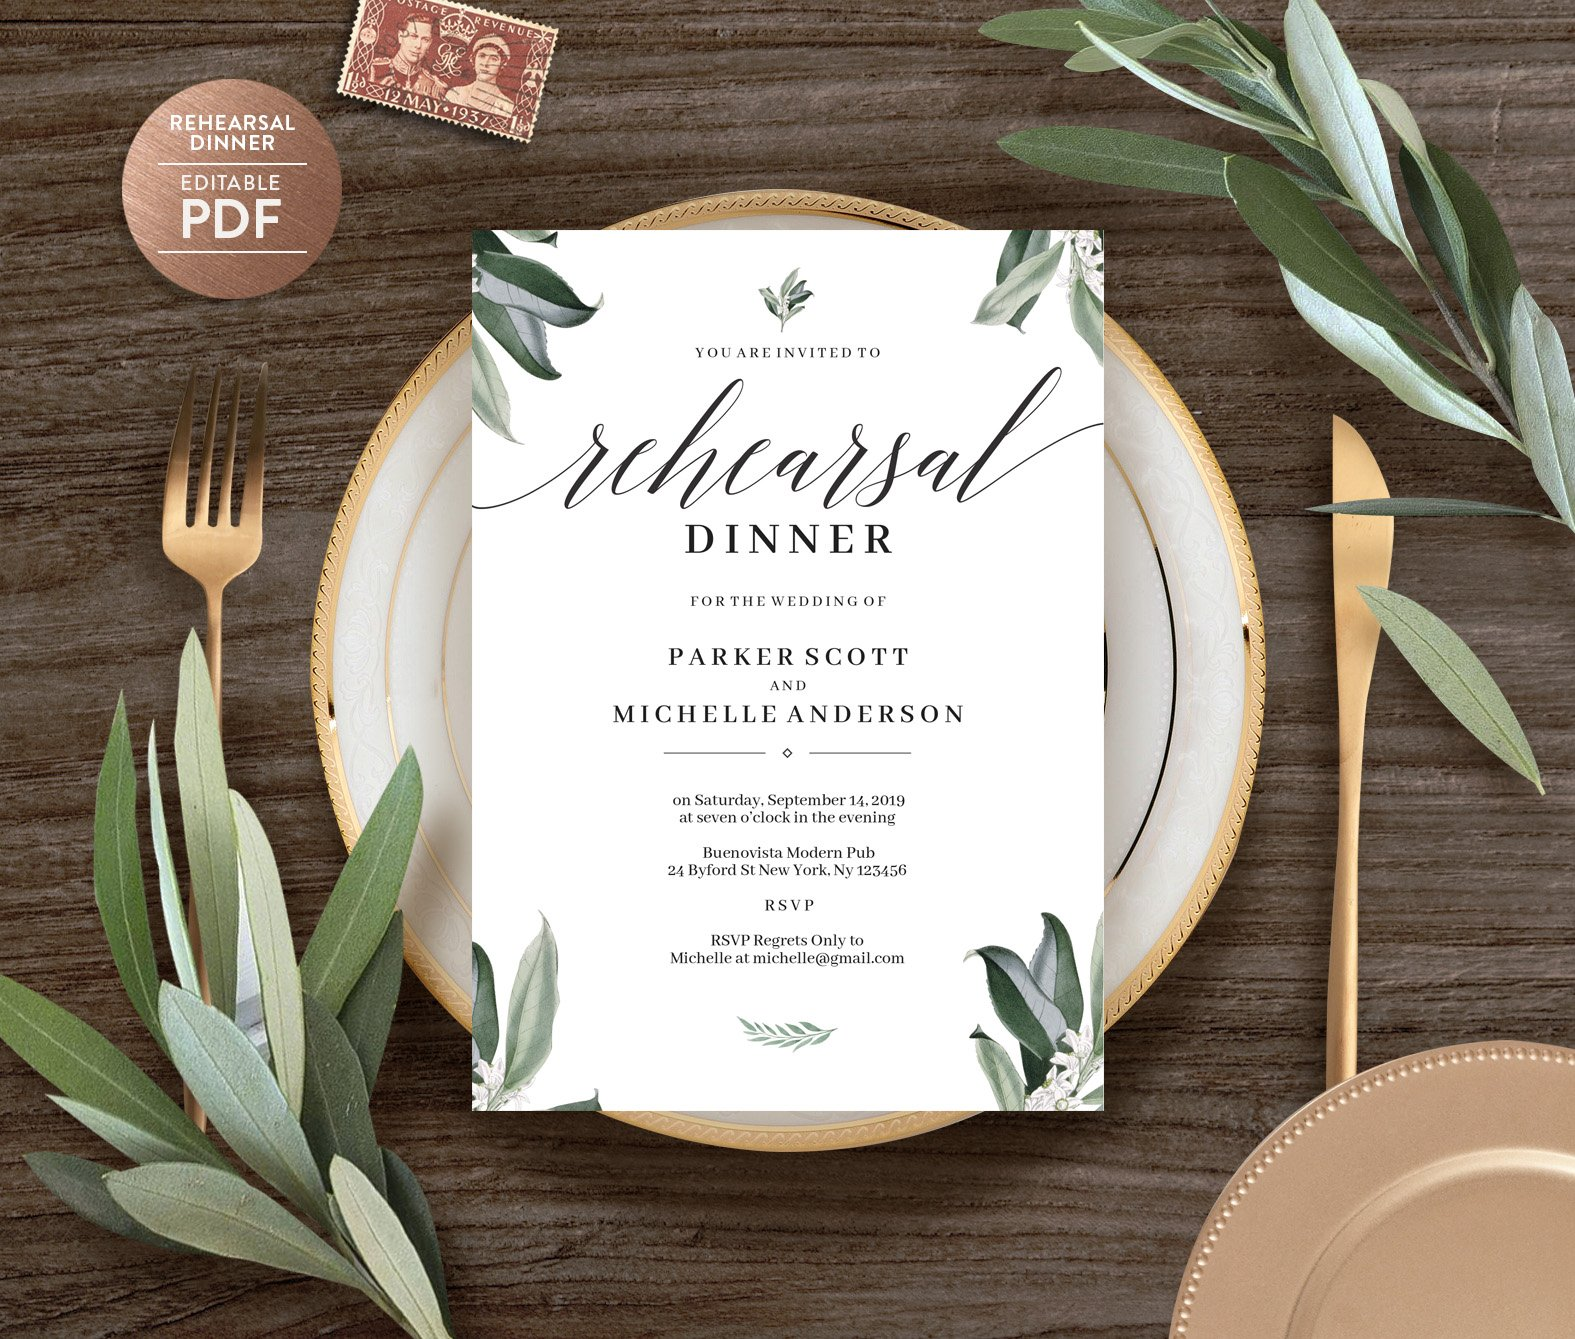 Rehearsal Dinner Invitation Template | Creative Wedding Templates ~  Creative Market